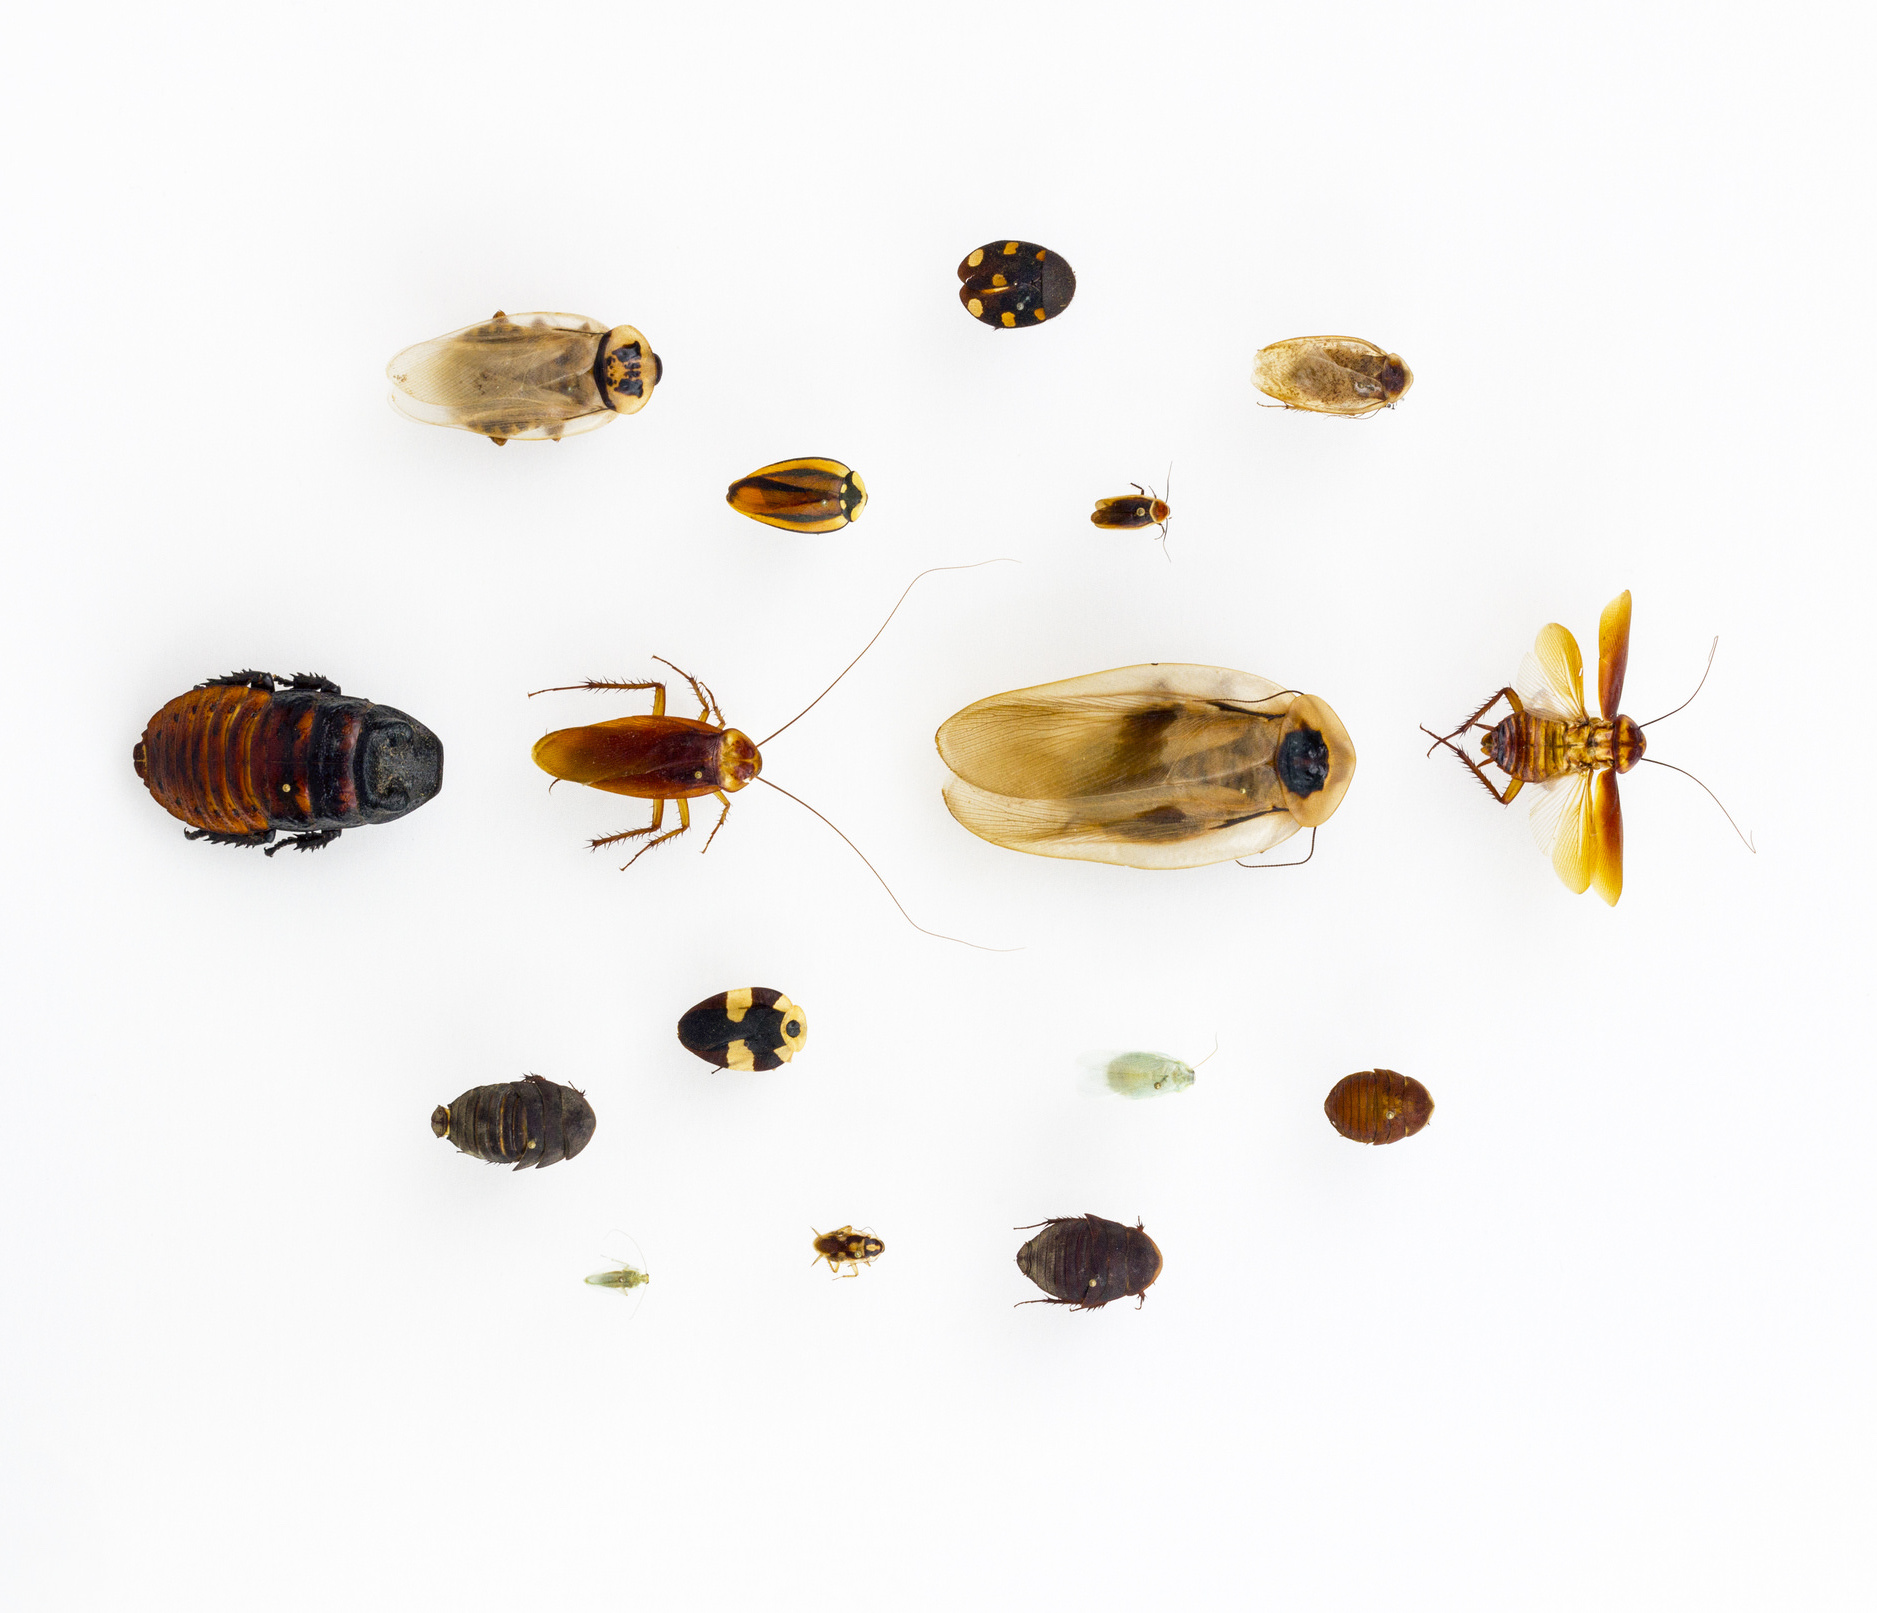 an assortment of cockroach specimens in a range of sizes and colors.